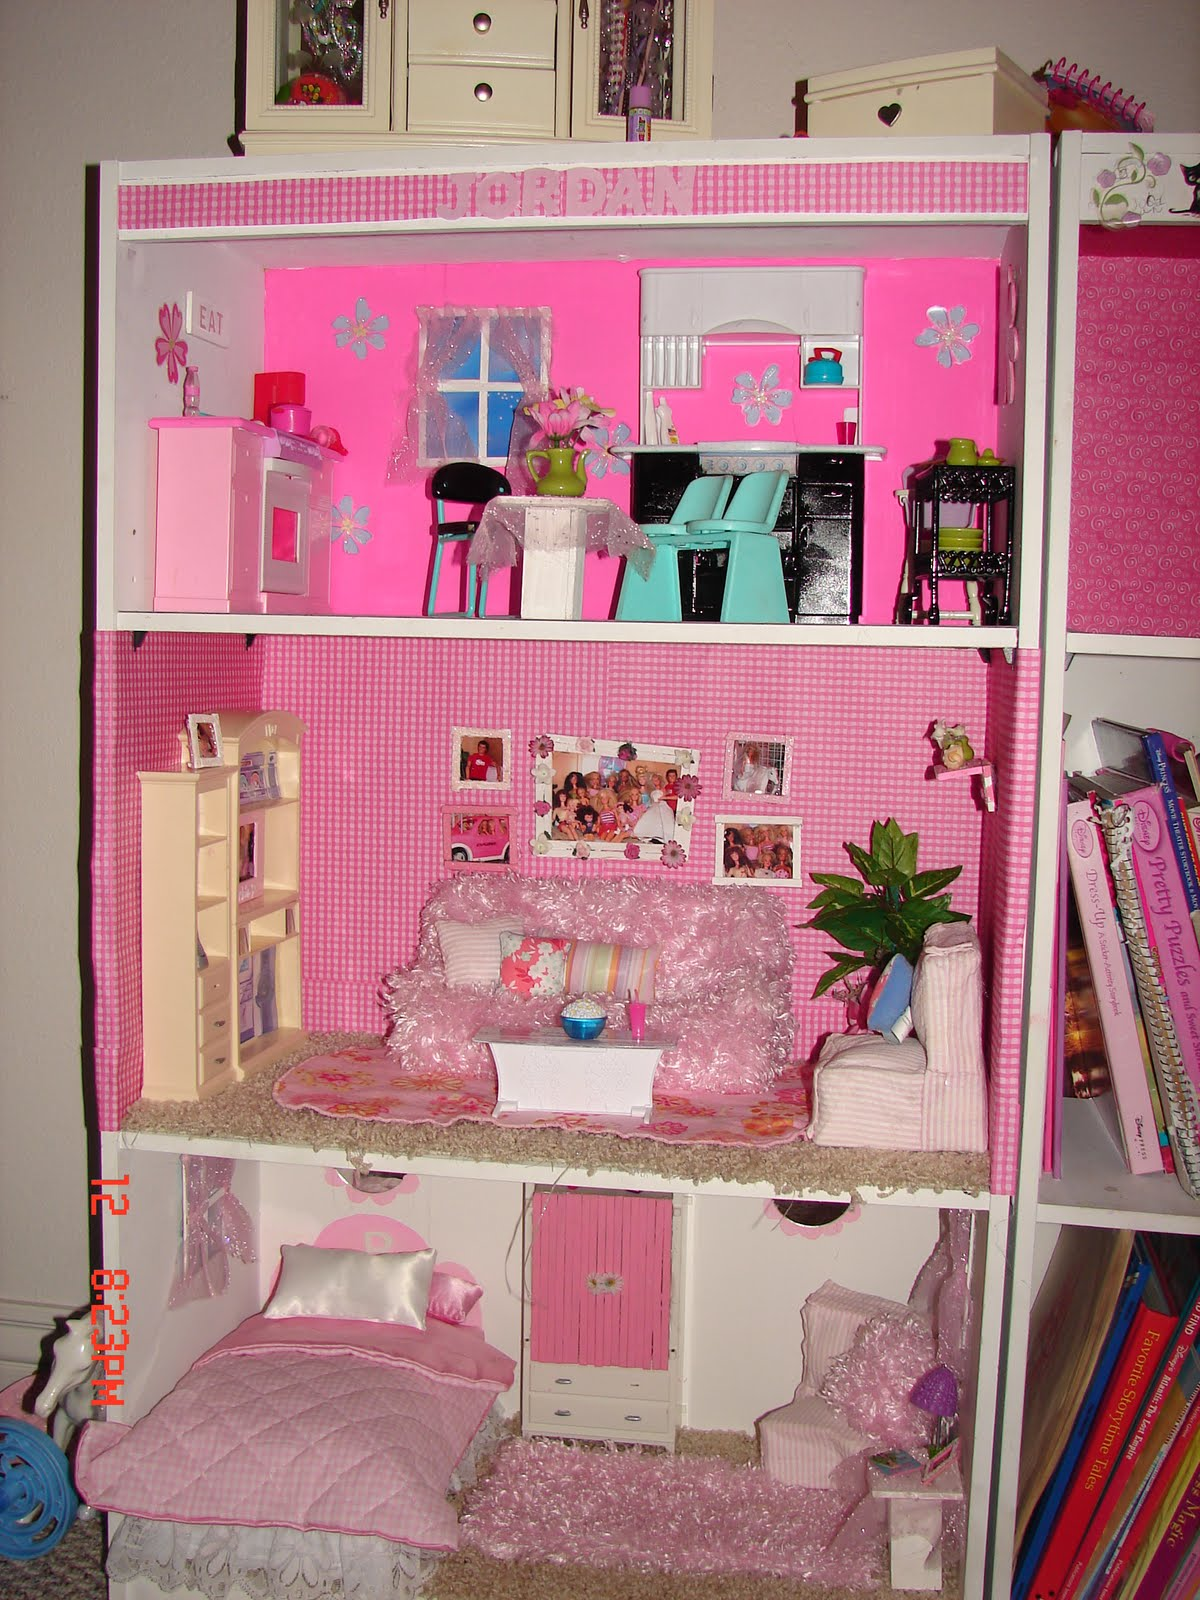 Make Your Own Barbie Furniture Property Brilliant Diy Barbie House From A Shelf  A Girl And A Glue Gun Inspiration Design